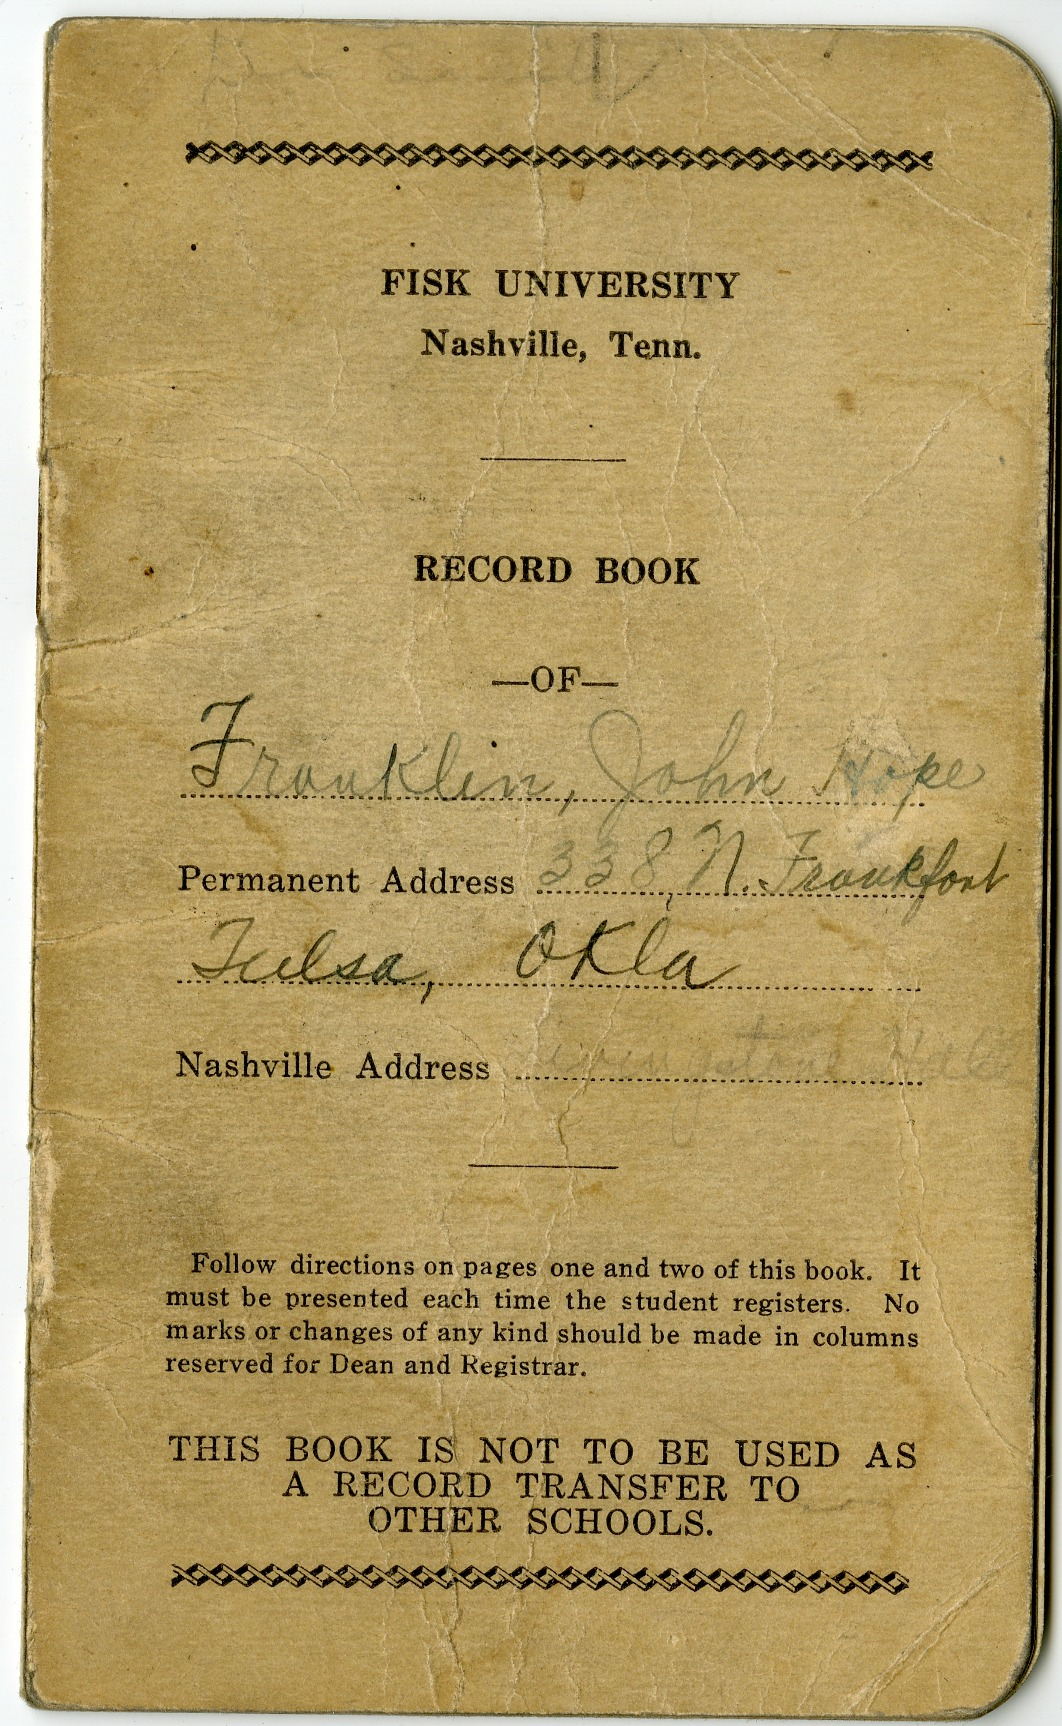 John Hope Franklin's grade book at Fisk University, 1933